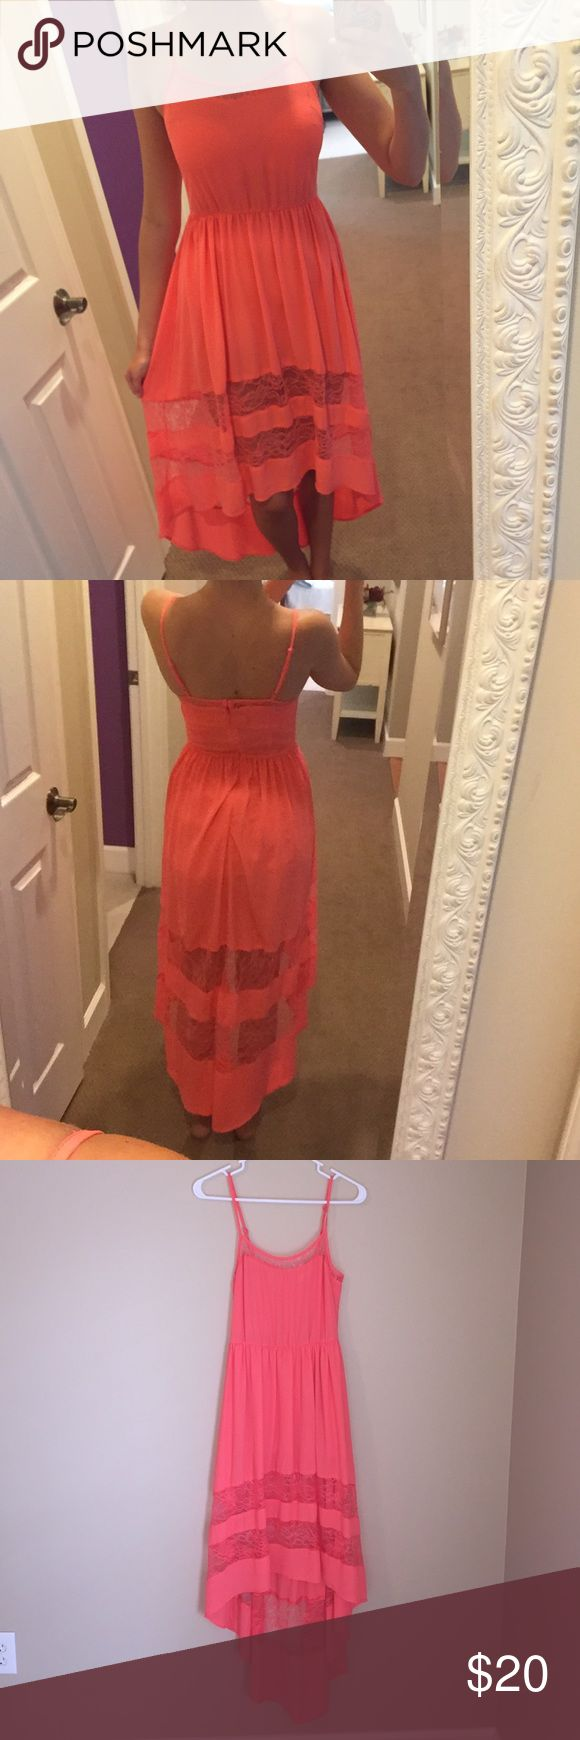 Lush hi-low coral sundress Lush brand hi-low sundress with lace cutouts and adjustable straps. Size S in juniors excellent condition! Brand is sold at Altar'd State Altar'd State Dresses High Low